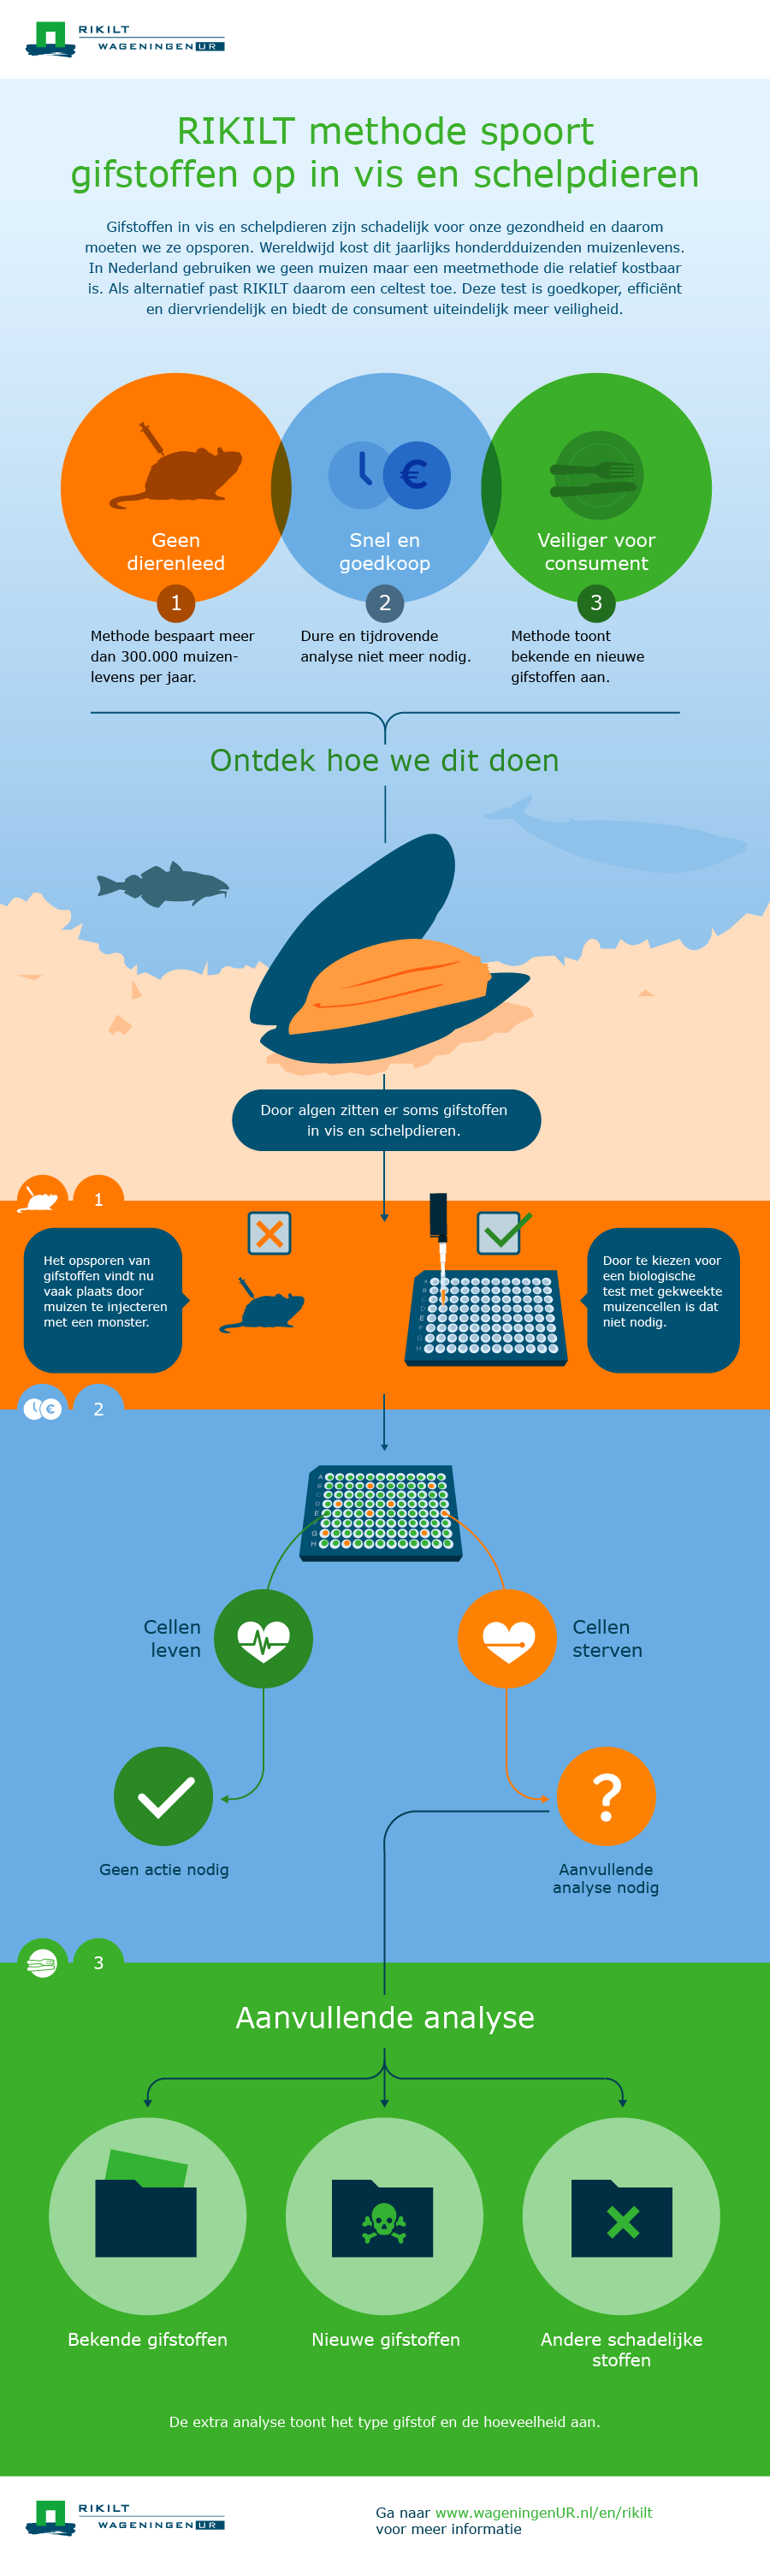 1366_RIKILT_Infographic_MarineToxine_NL_20160721_WUR WEBSITE BREED.png